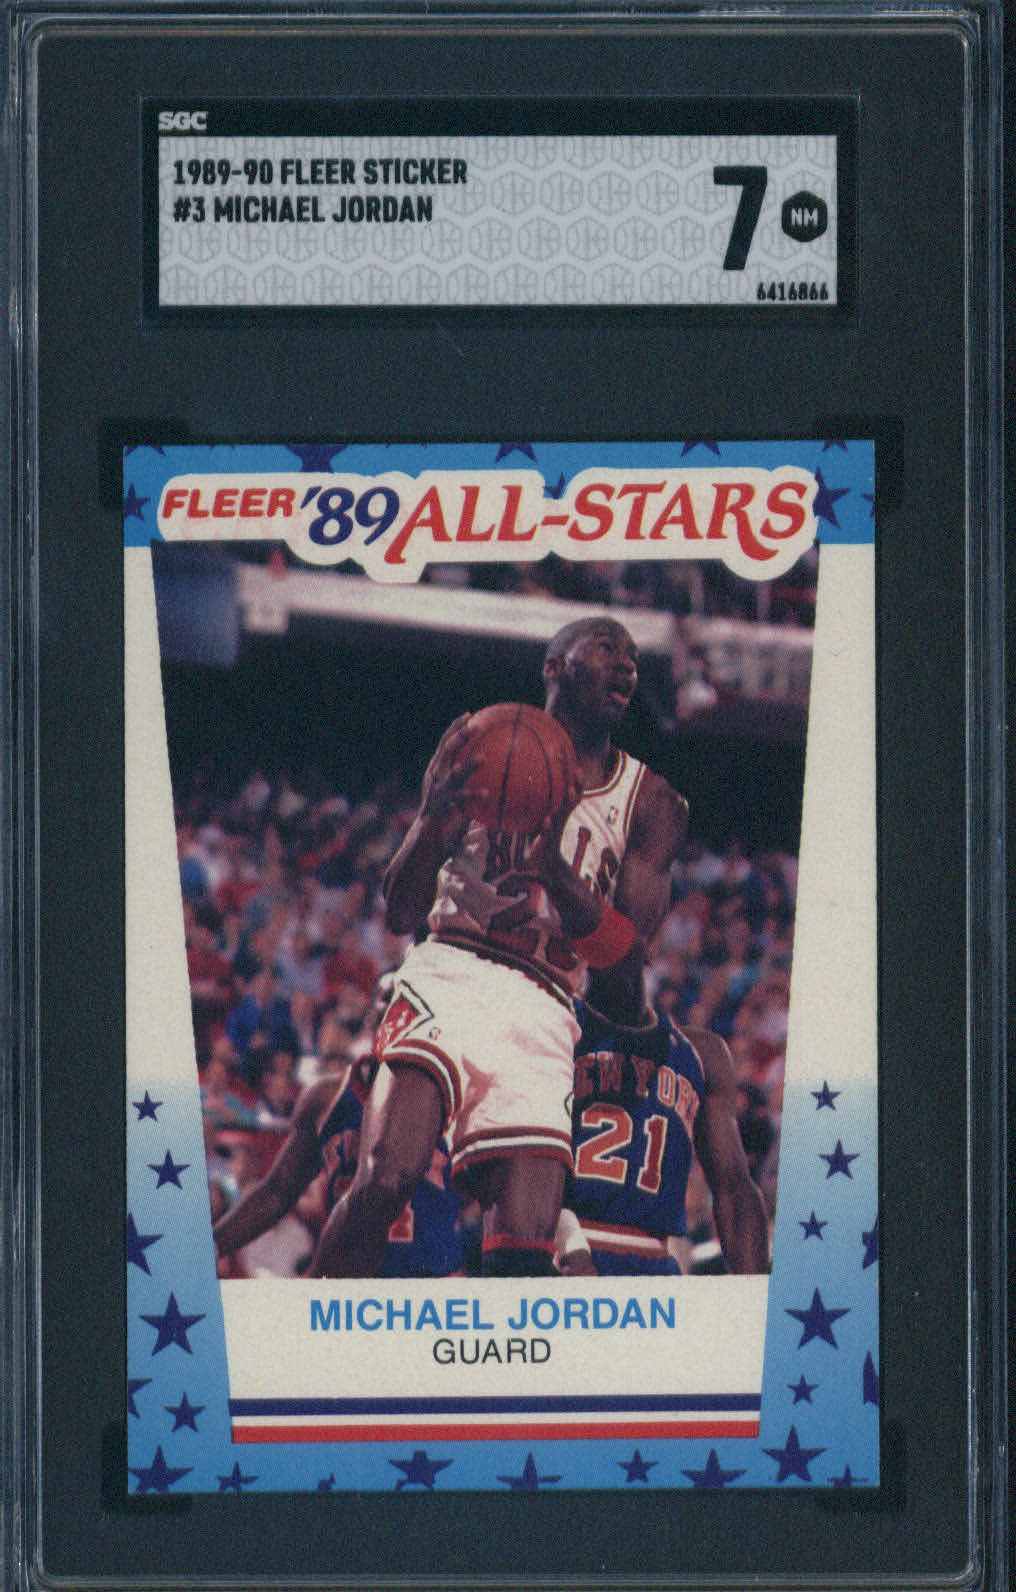 1989 Fleer Sticker #3 Michael Jordan SGC 7